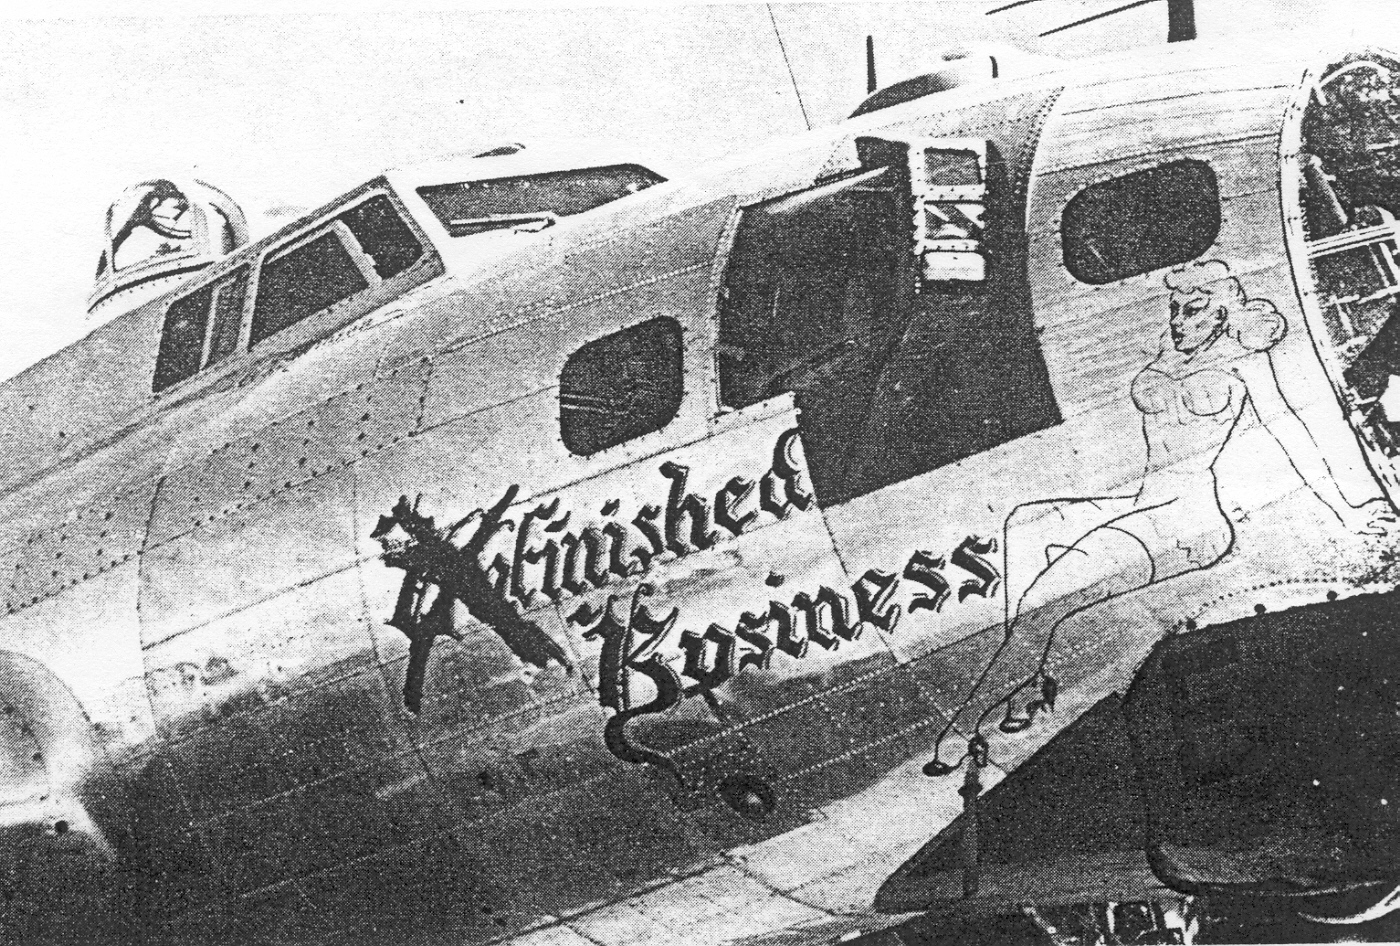 B-17 #43-39249 / Unfinished Business